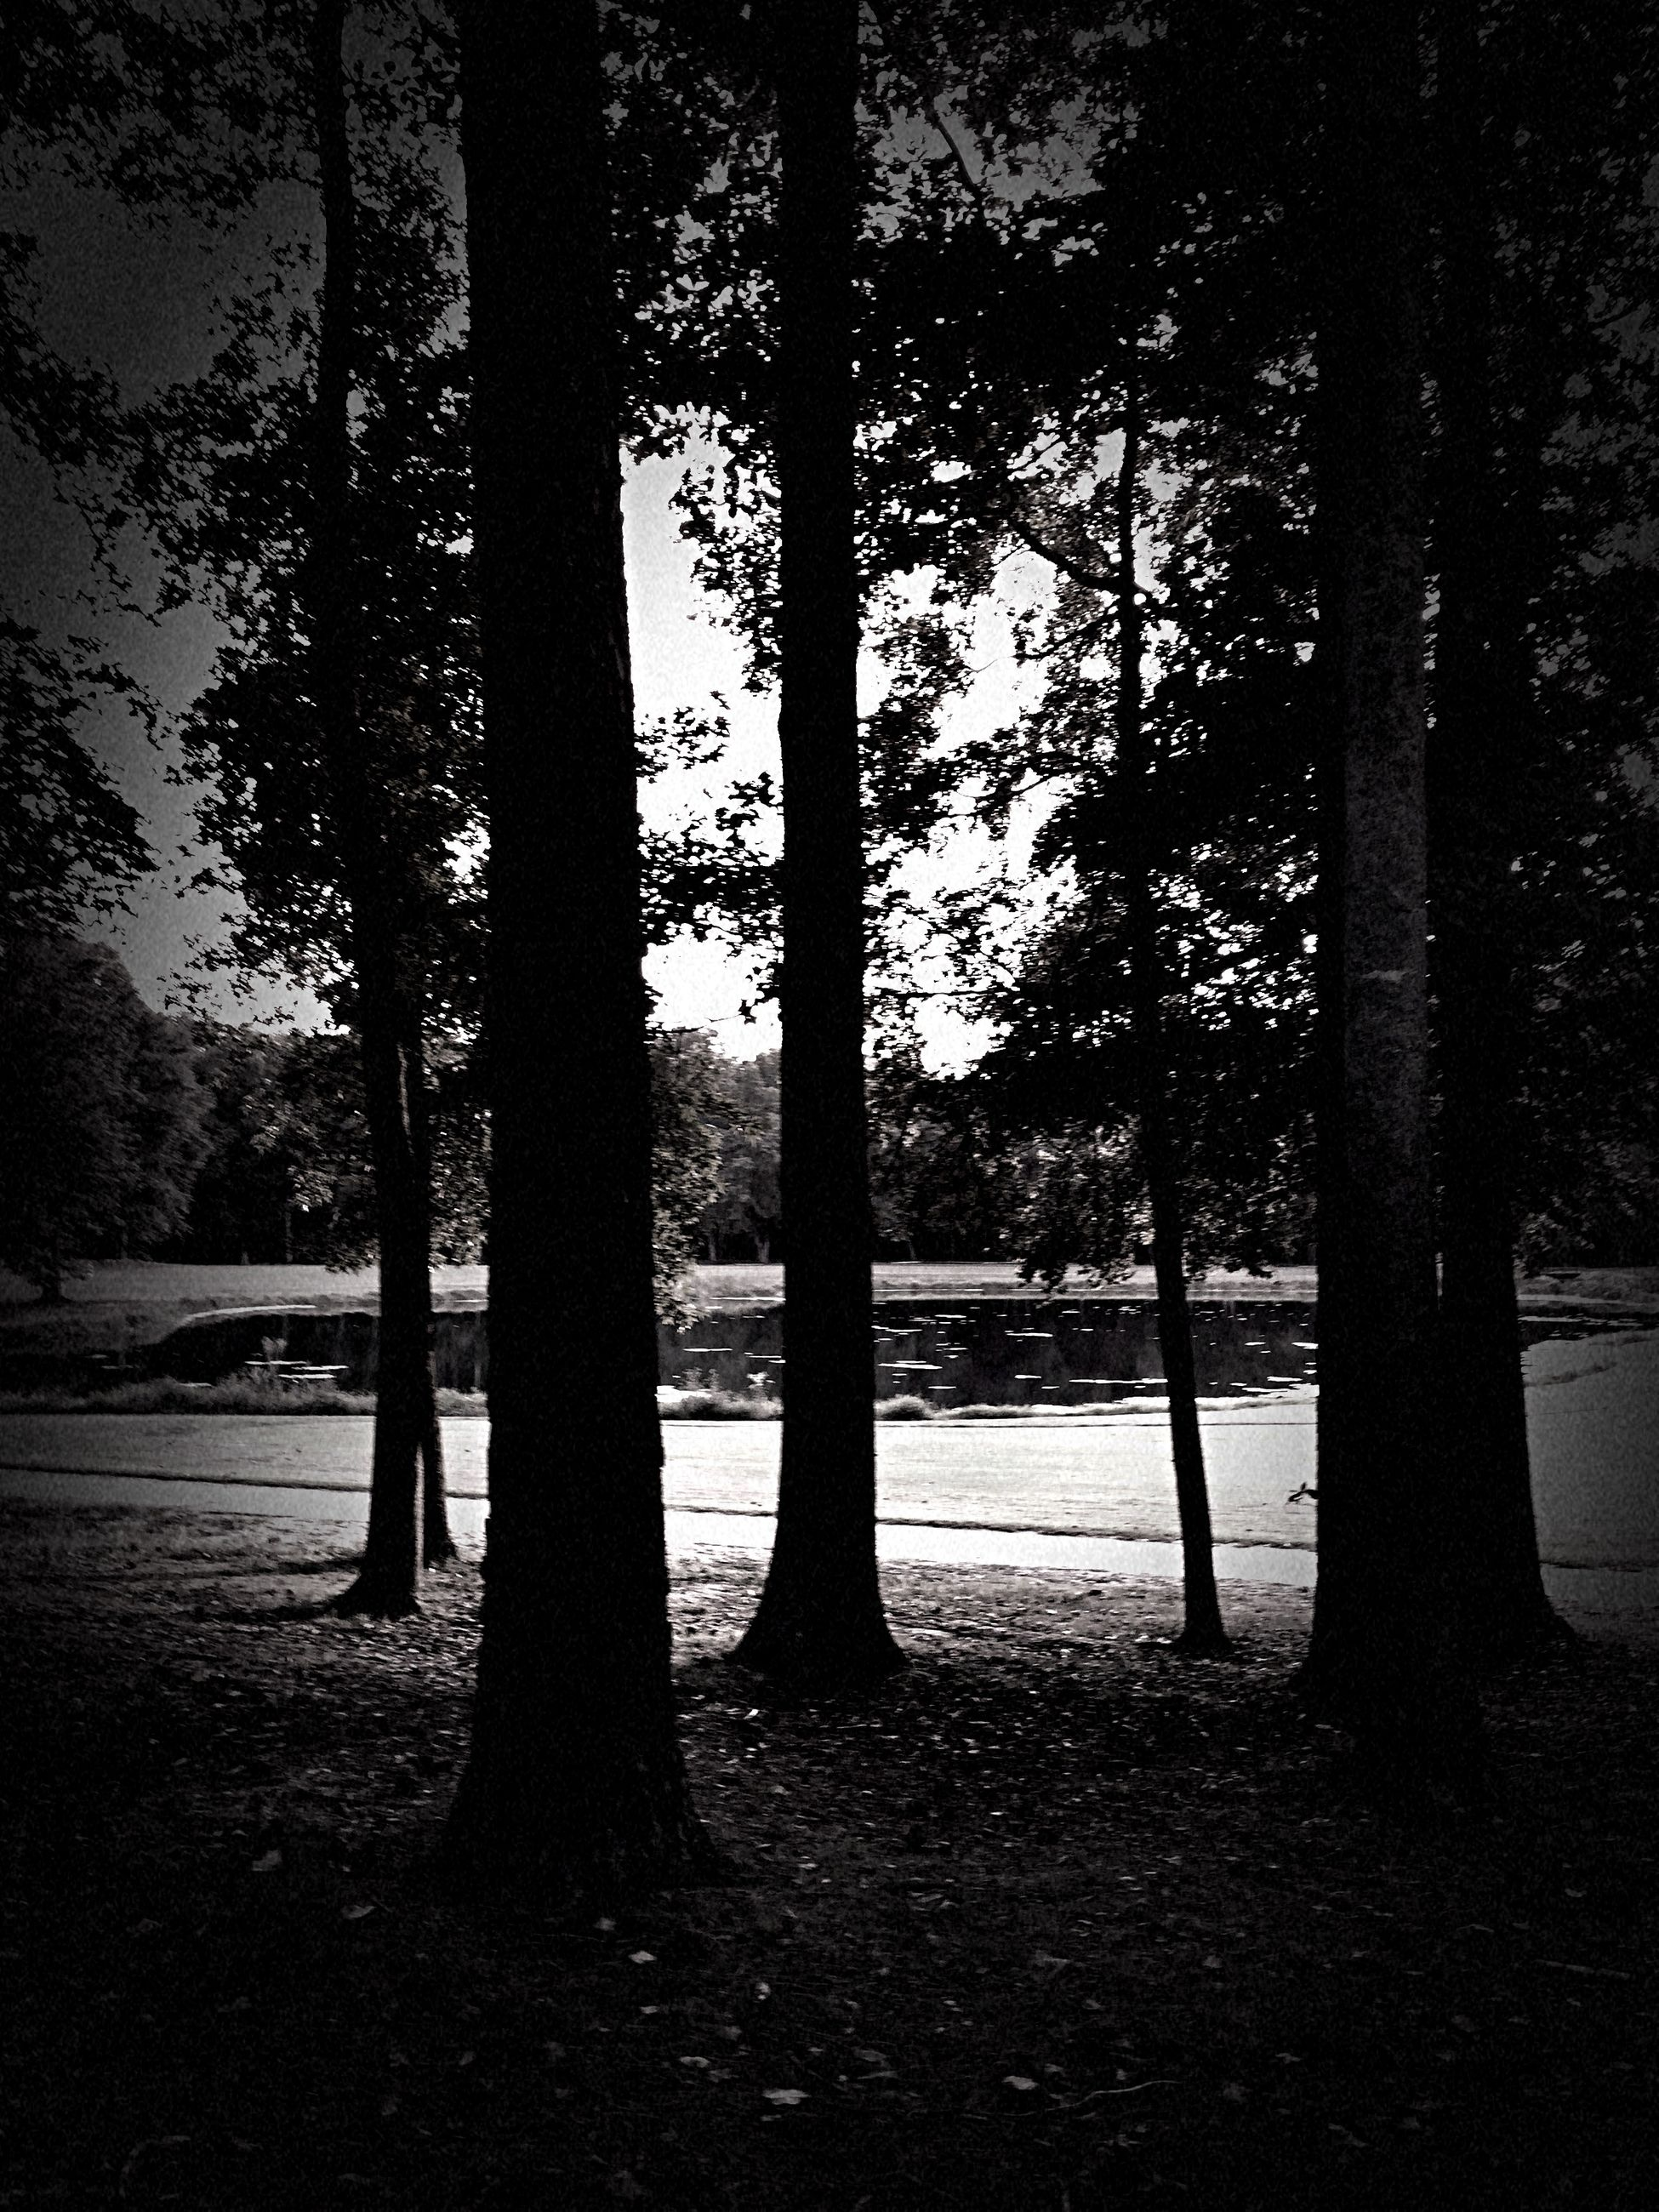 tree, tree trunk, tranquility, tranquil scene, nature, beauty in nature, silhouette, scenics, growth, landscape, sunlight, sunset, branch, field, idyllic, park - man made space, outdoors, non-urban scene, no people, shadow